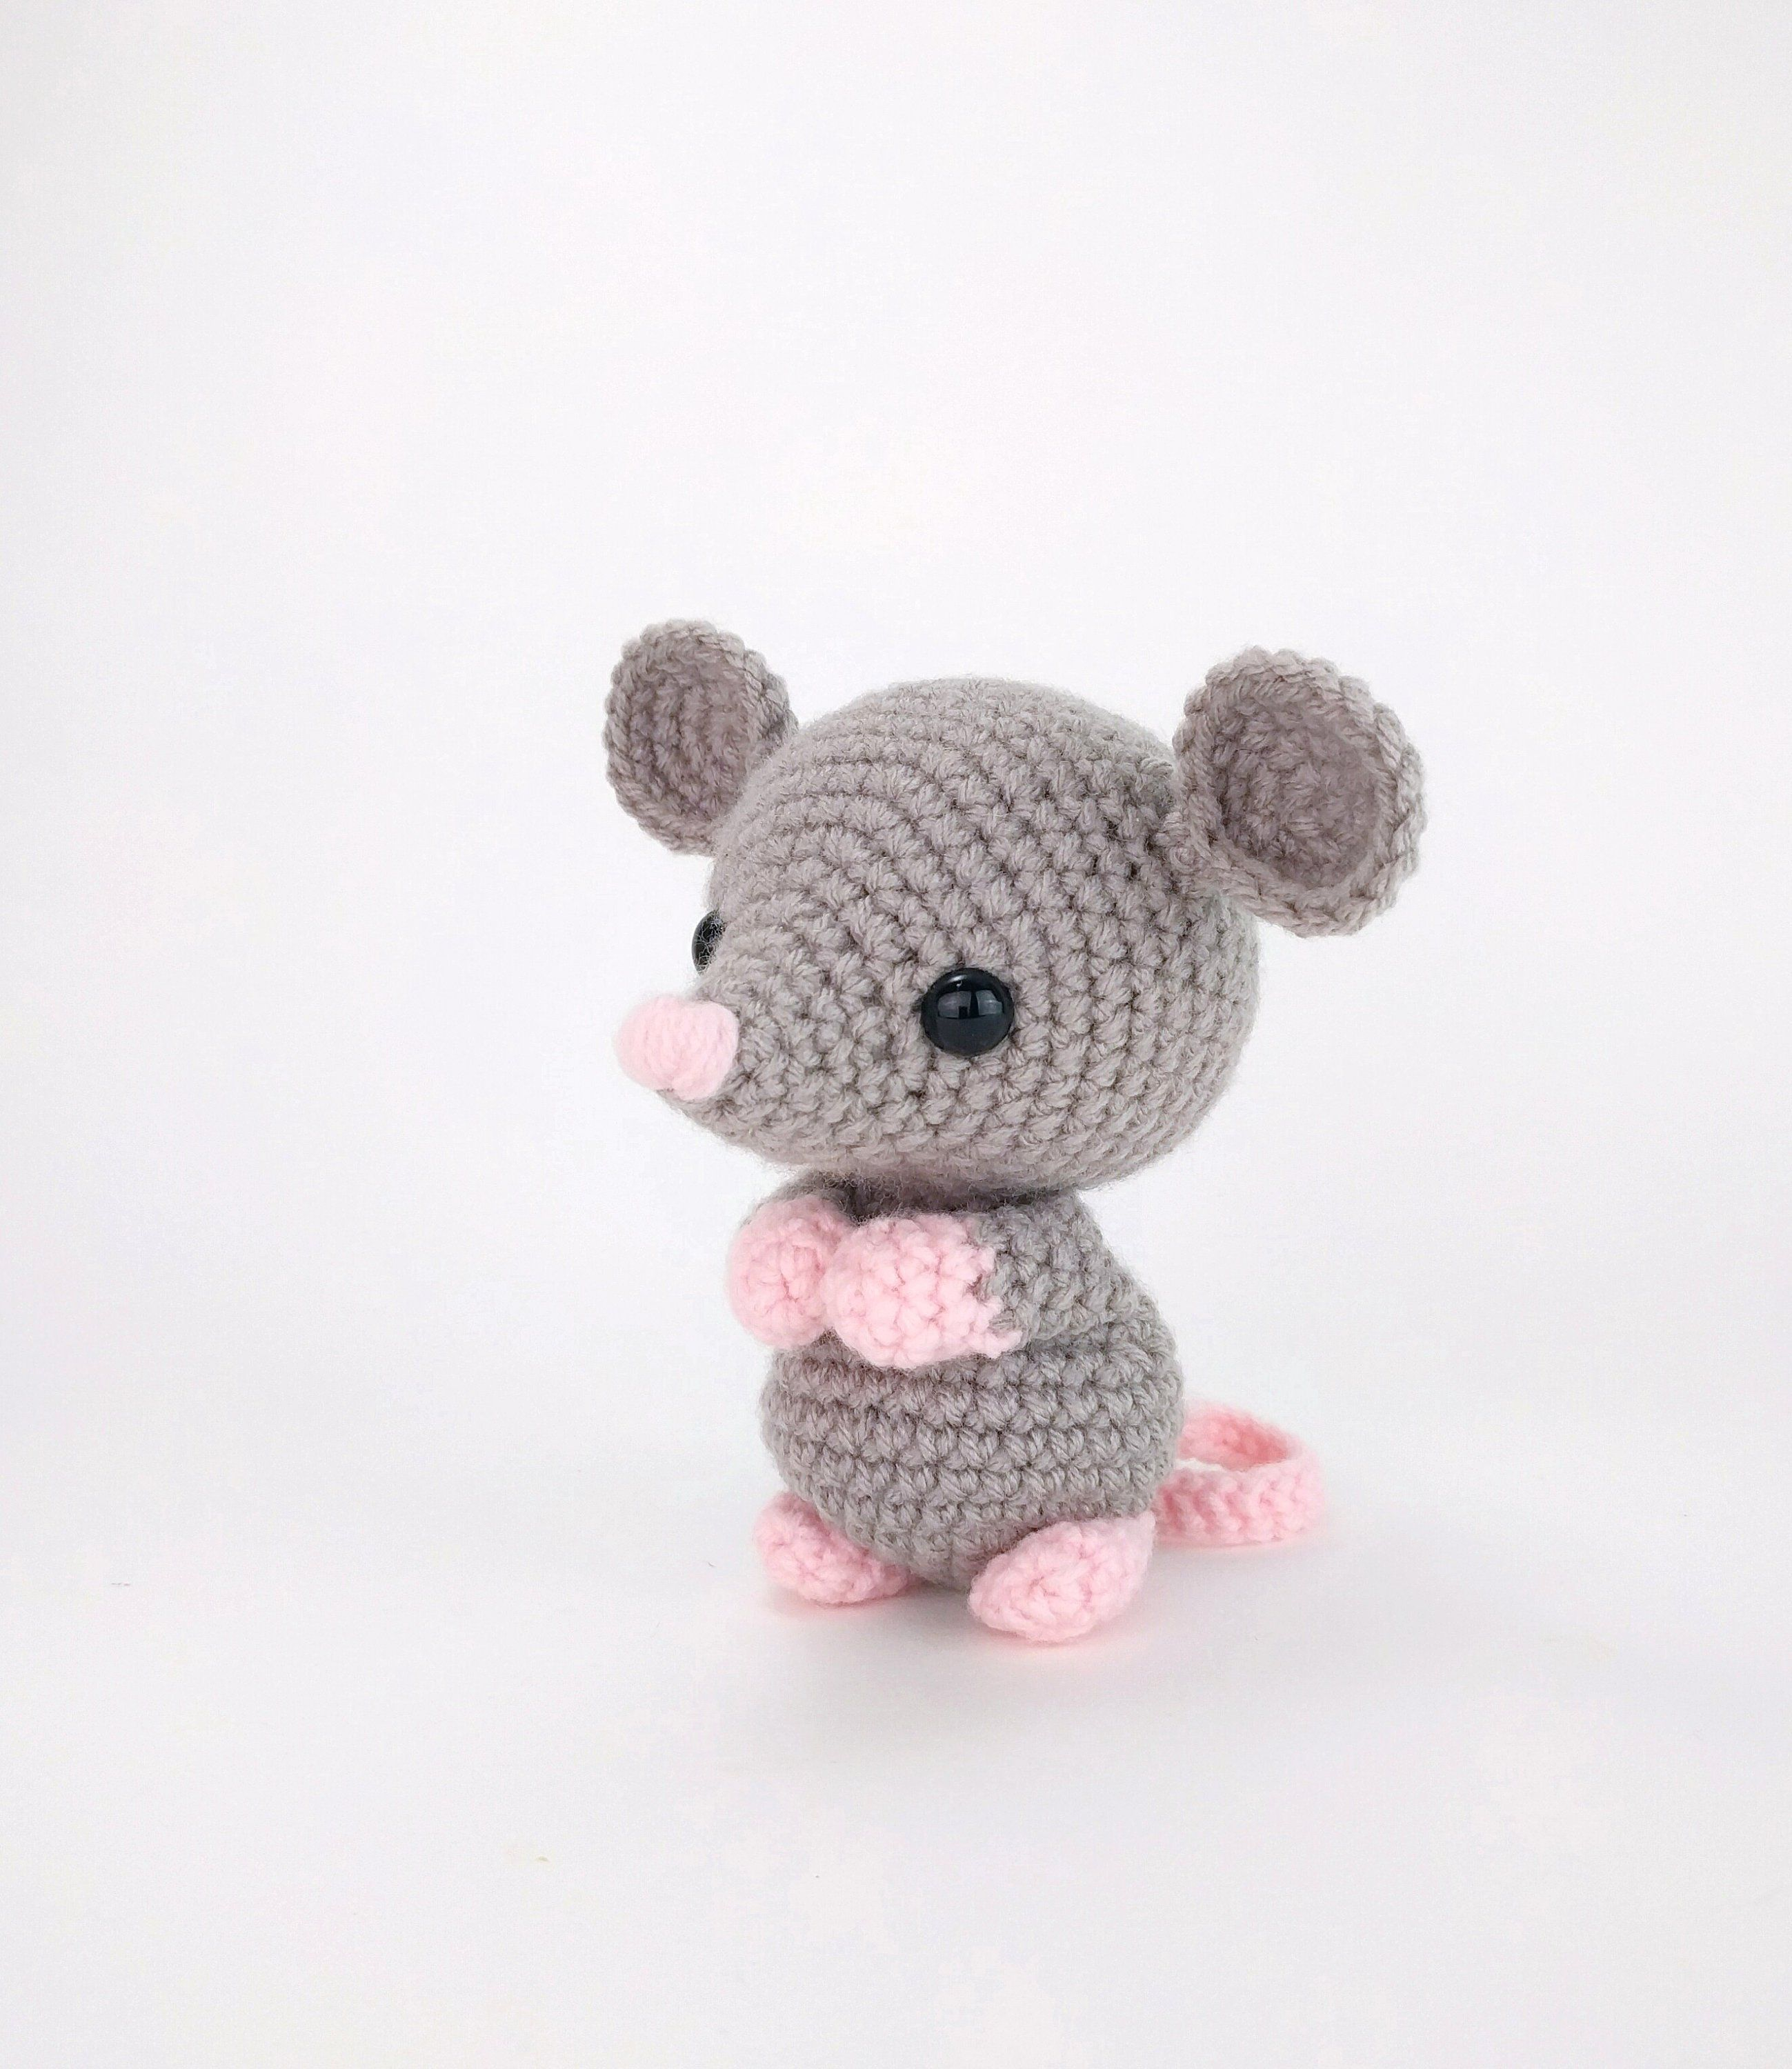 PATTERN: Maxwell the Mouse - Crochet mouse pattern - amigurumi mouse pattern - crocheted mouse pattern - PDF pattern - English Only